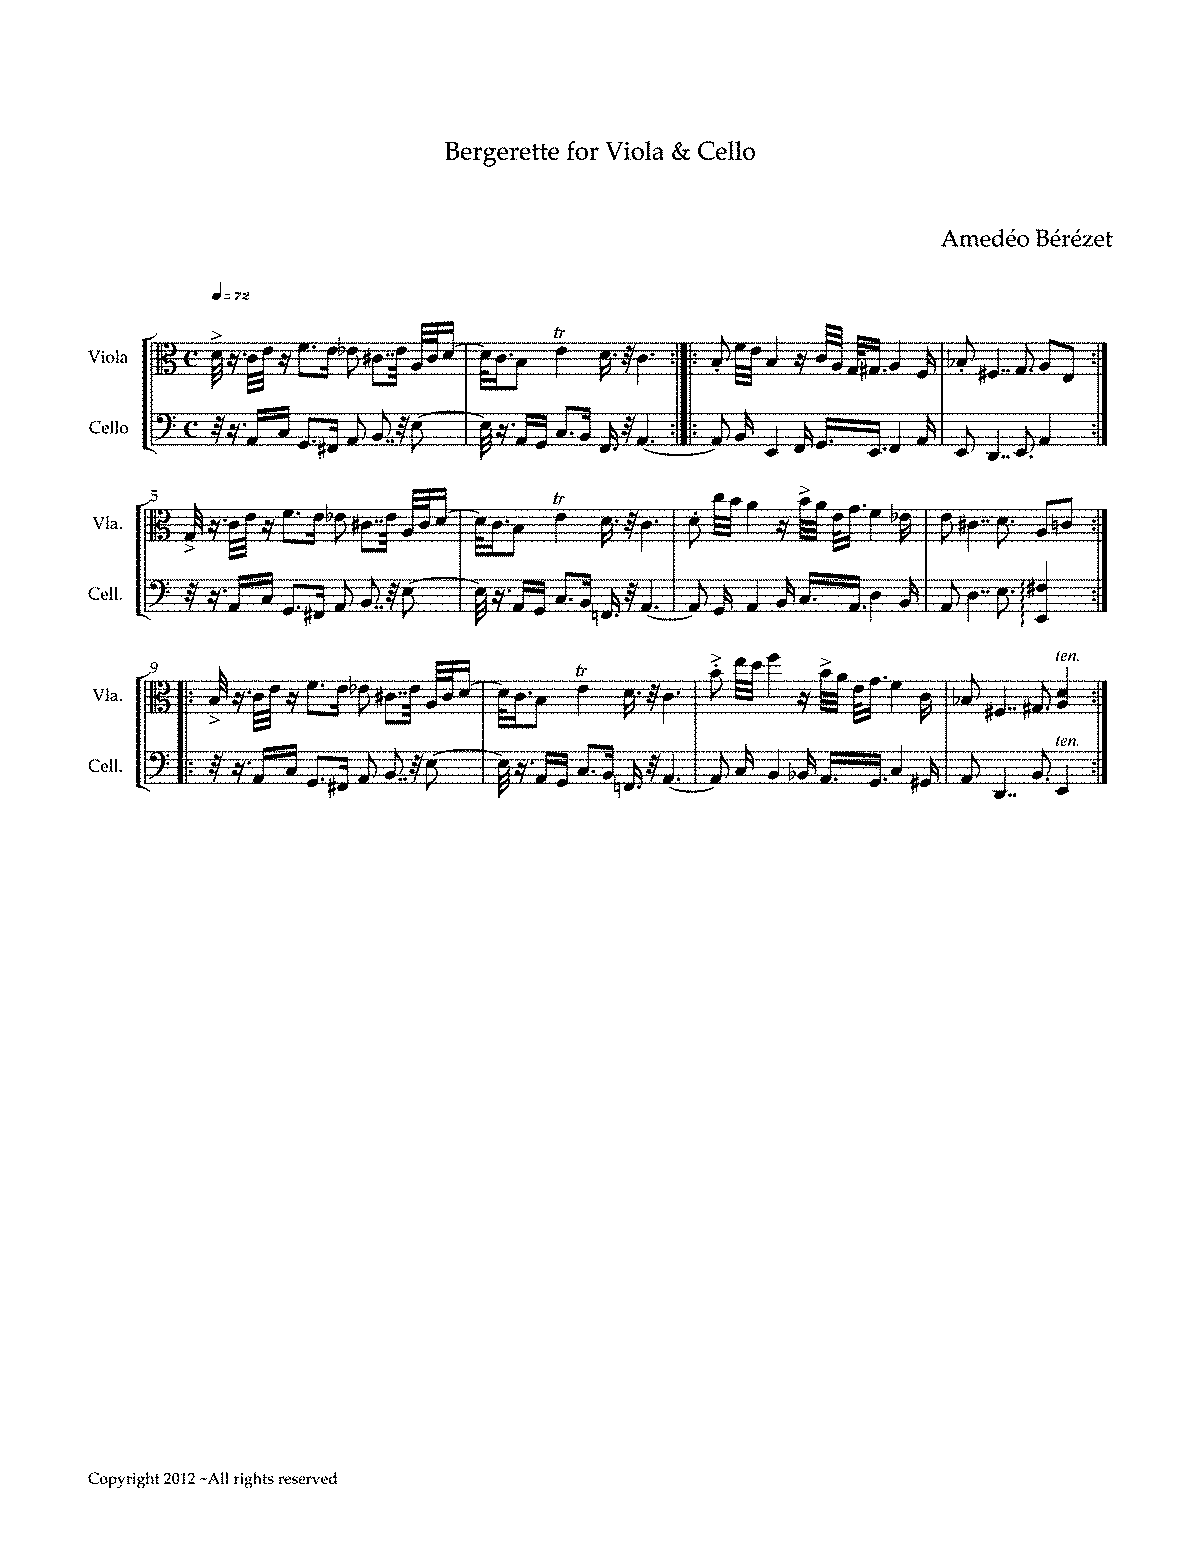 PMLP404593-Bergerette for Viola & Cello by Amedéo Bérézet.pdf